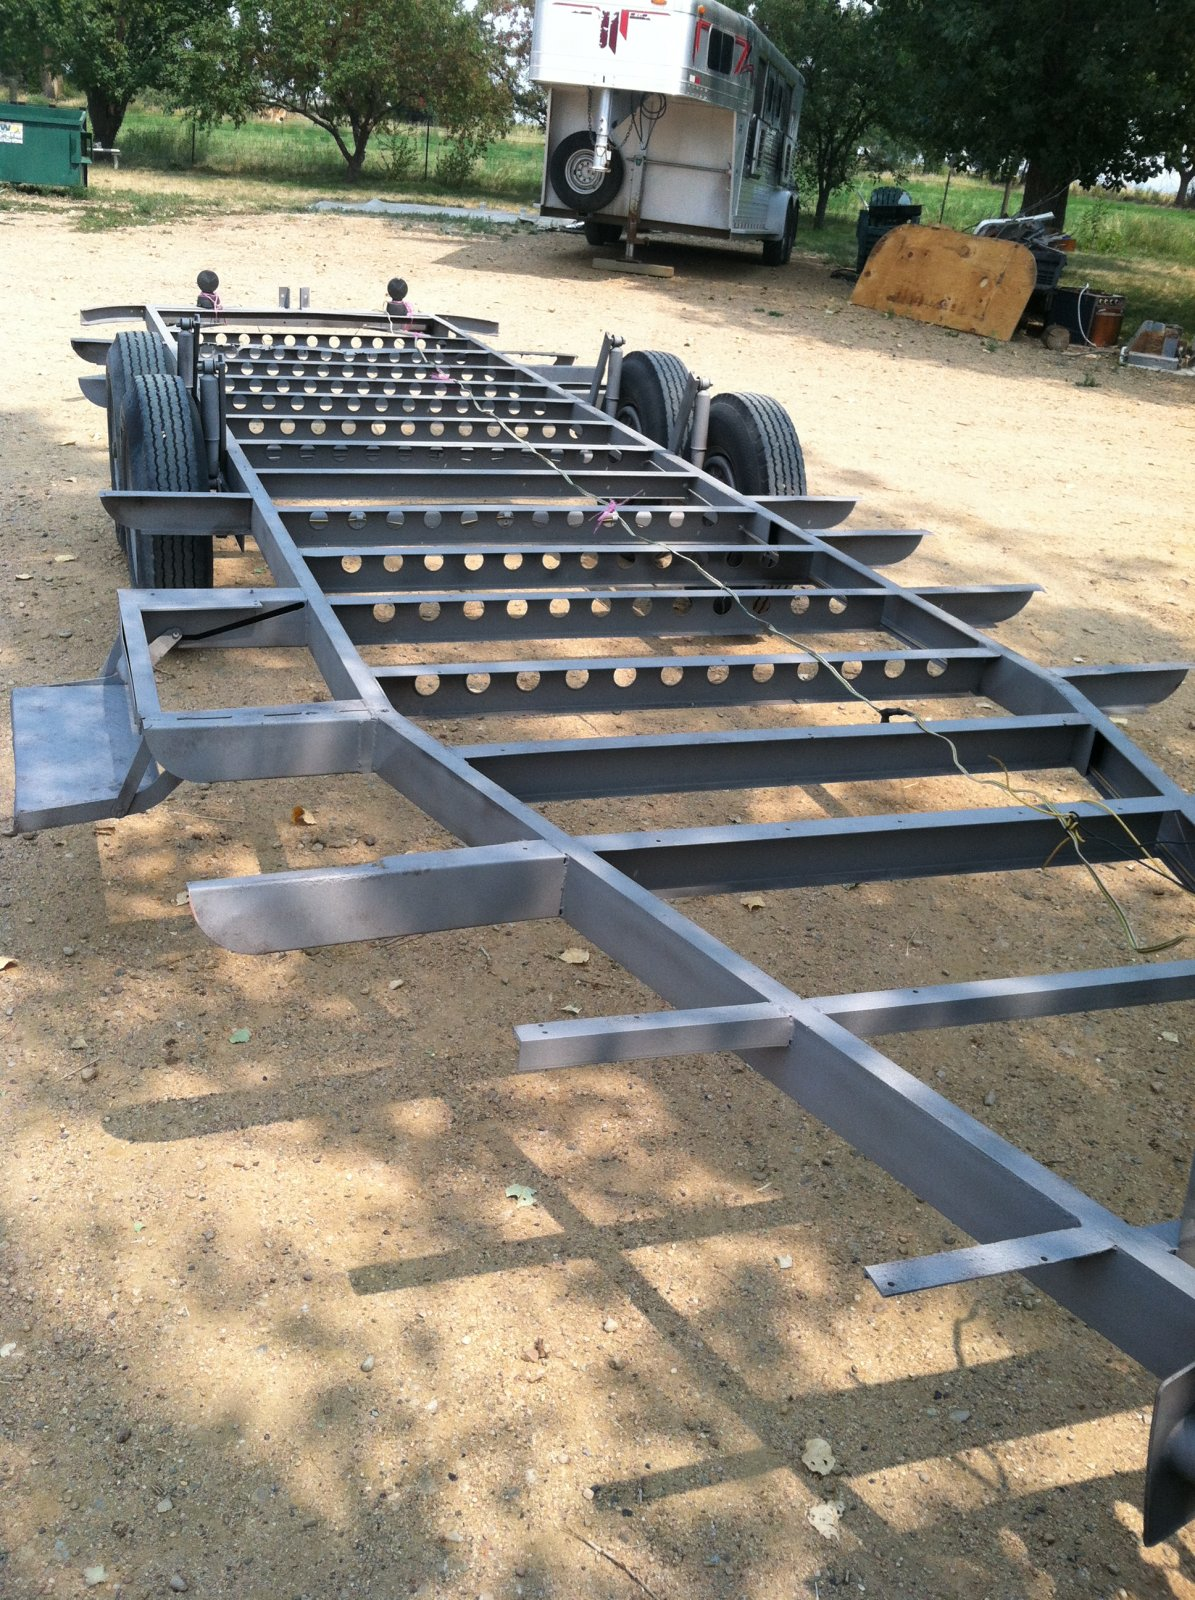 Click image for larger version  Name:stripped trailer 002.jpg Views:103 Size:513.3 KB ID:170094